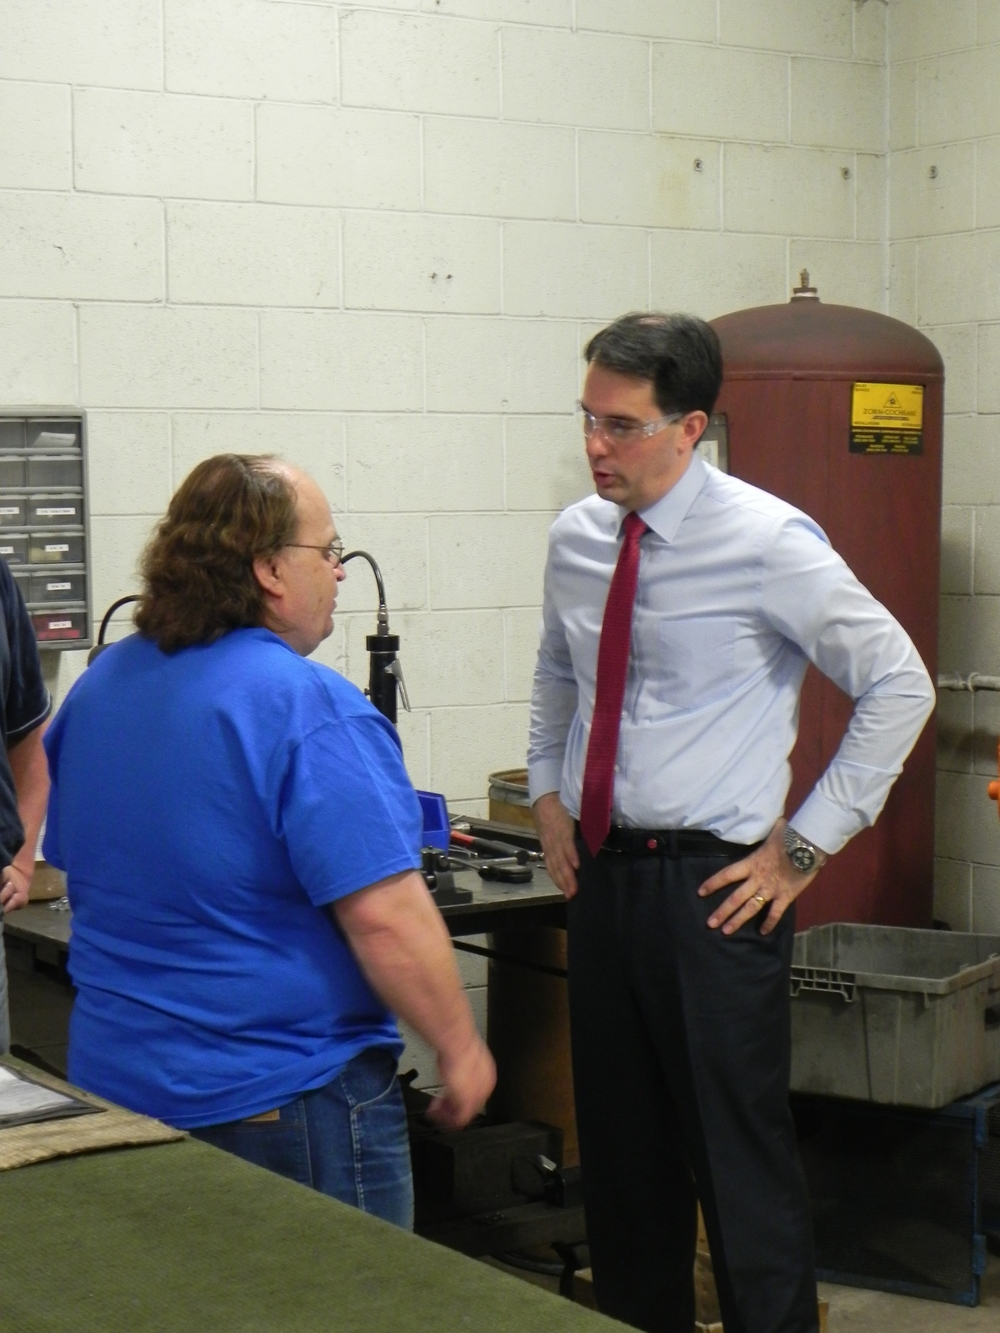 Spencer (pictured left) talking with Governor Scott Walker at his work station.